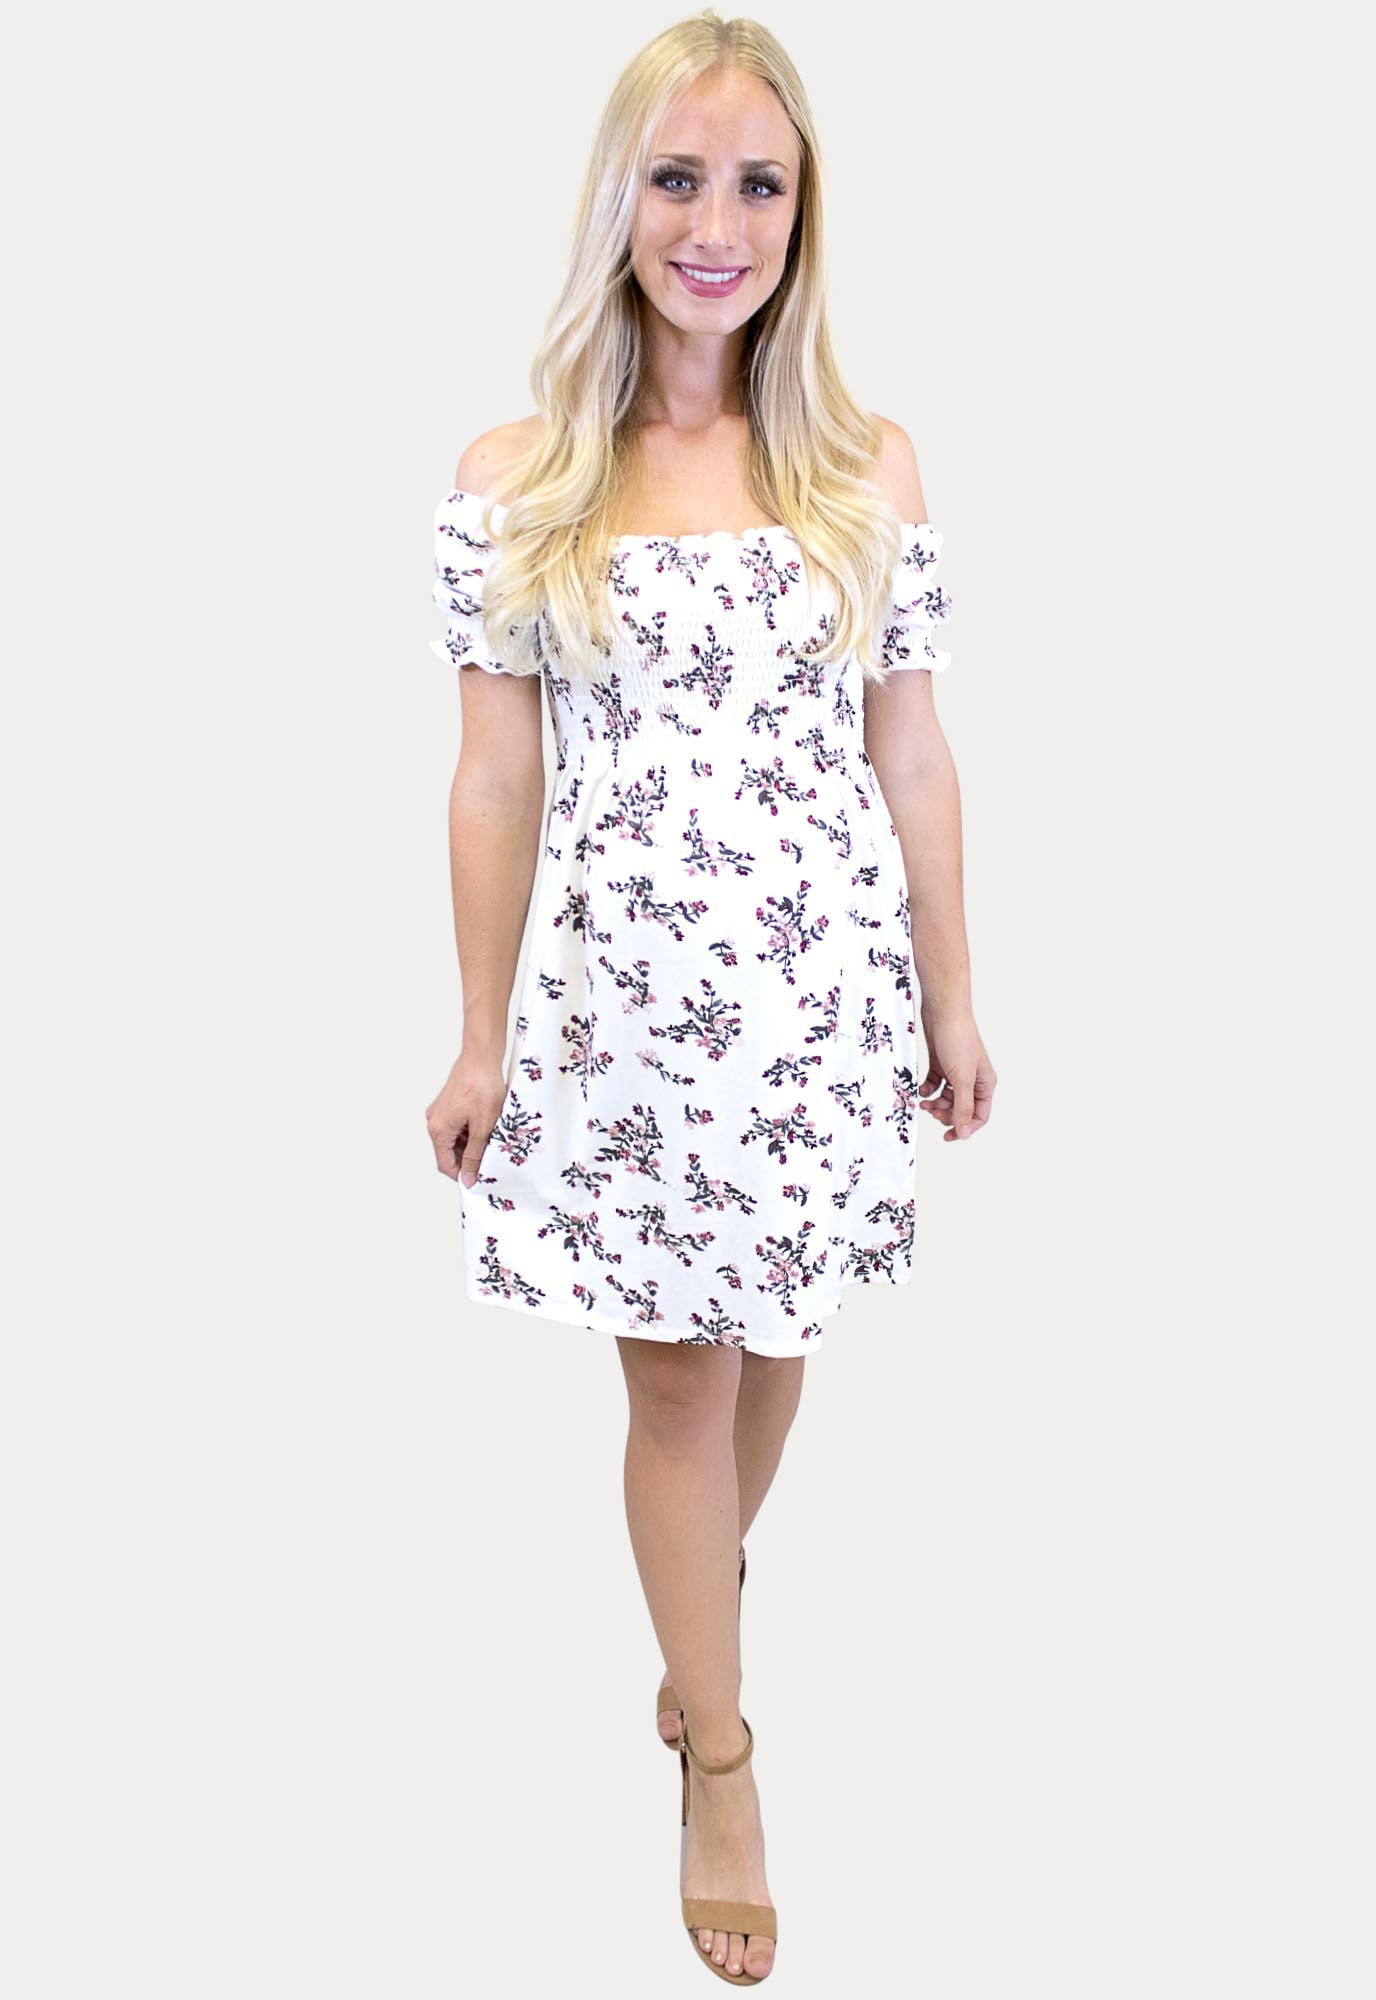 Floral Smock Top Pregnancy Dress Sexy Mama Maternity